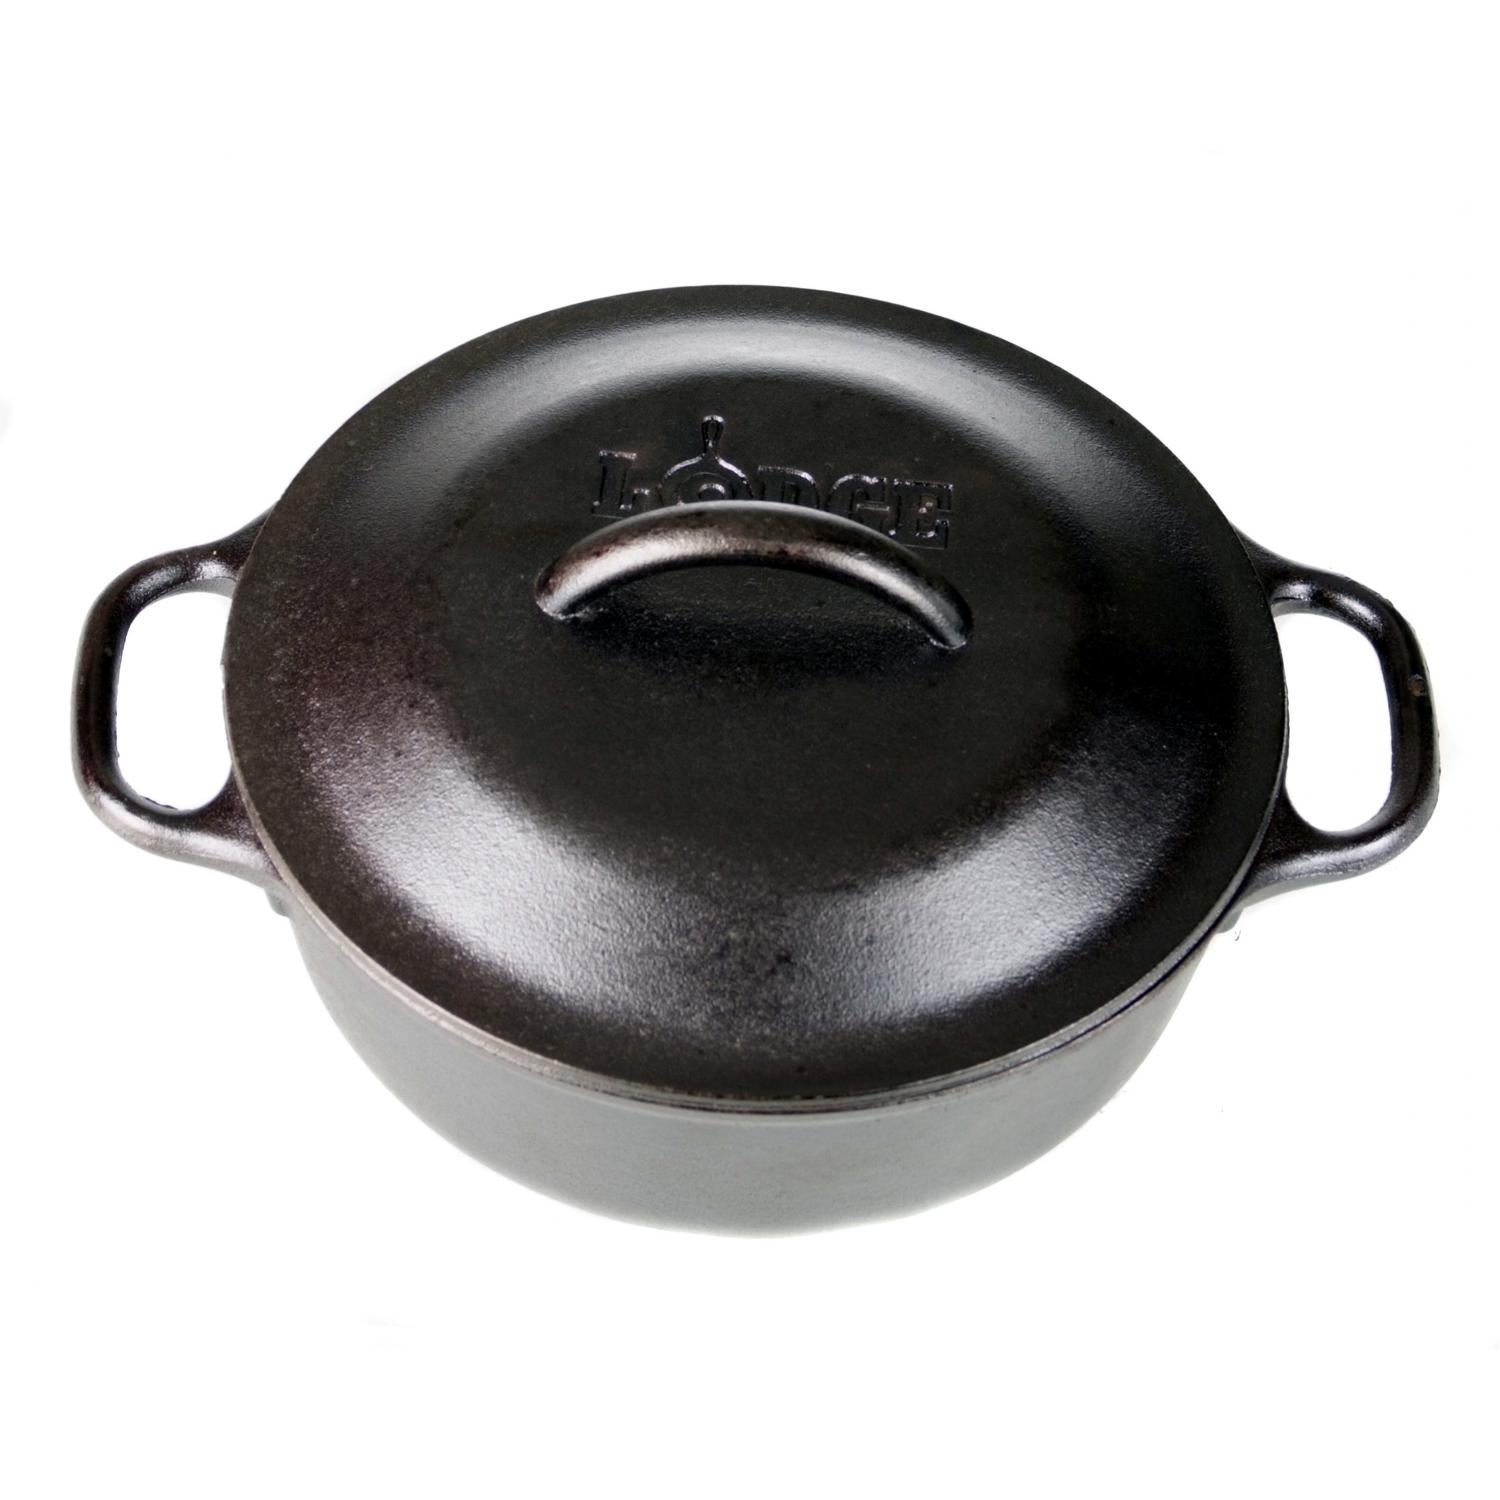 Lodge Cast Iron Serving Pot With Iron Cover Cookware Seasoned - L2SP3